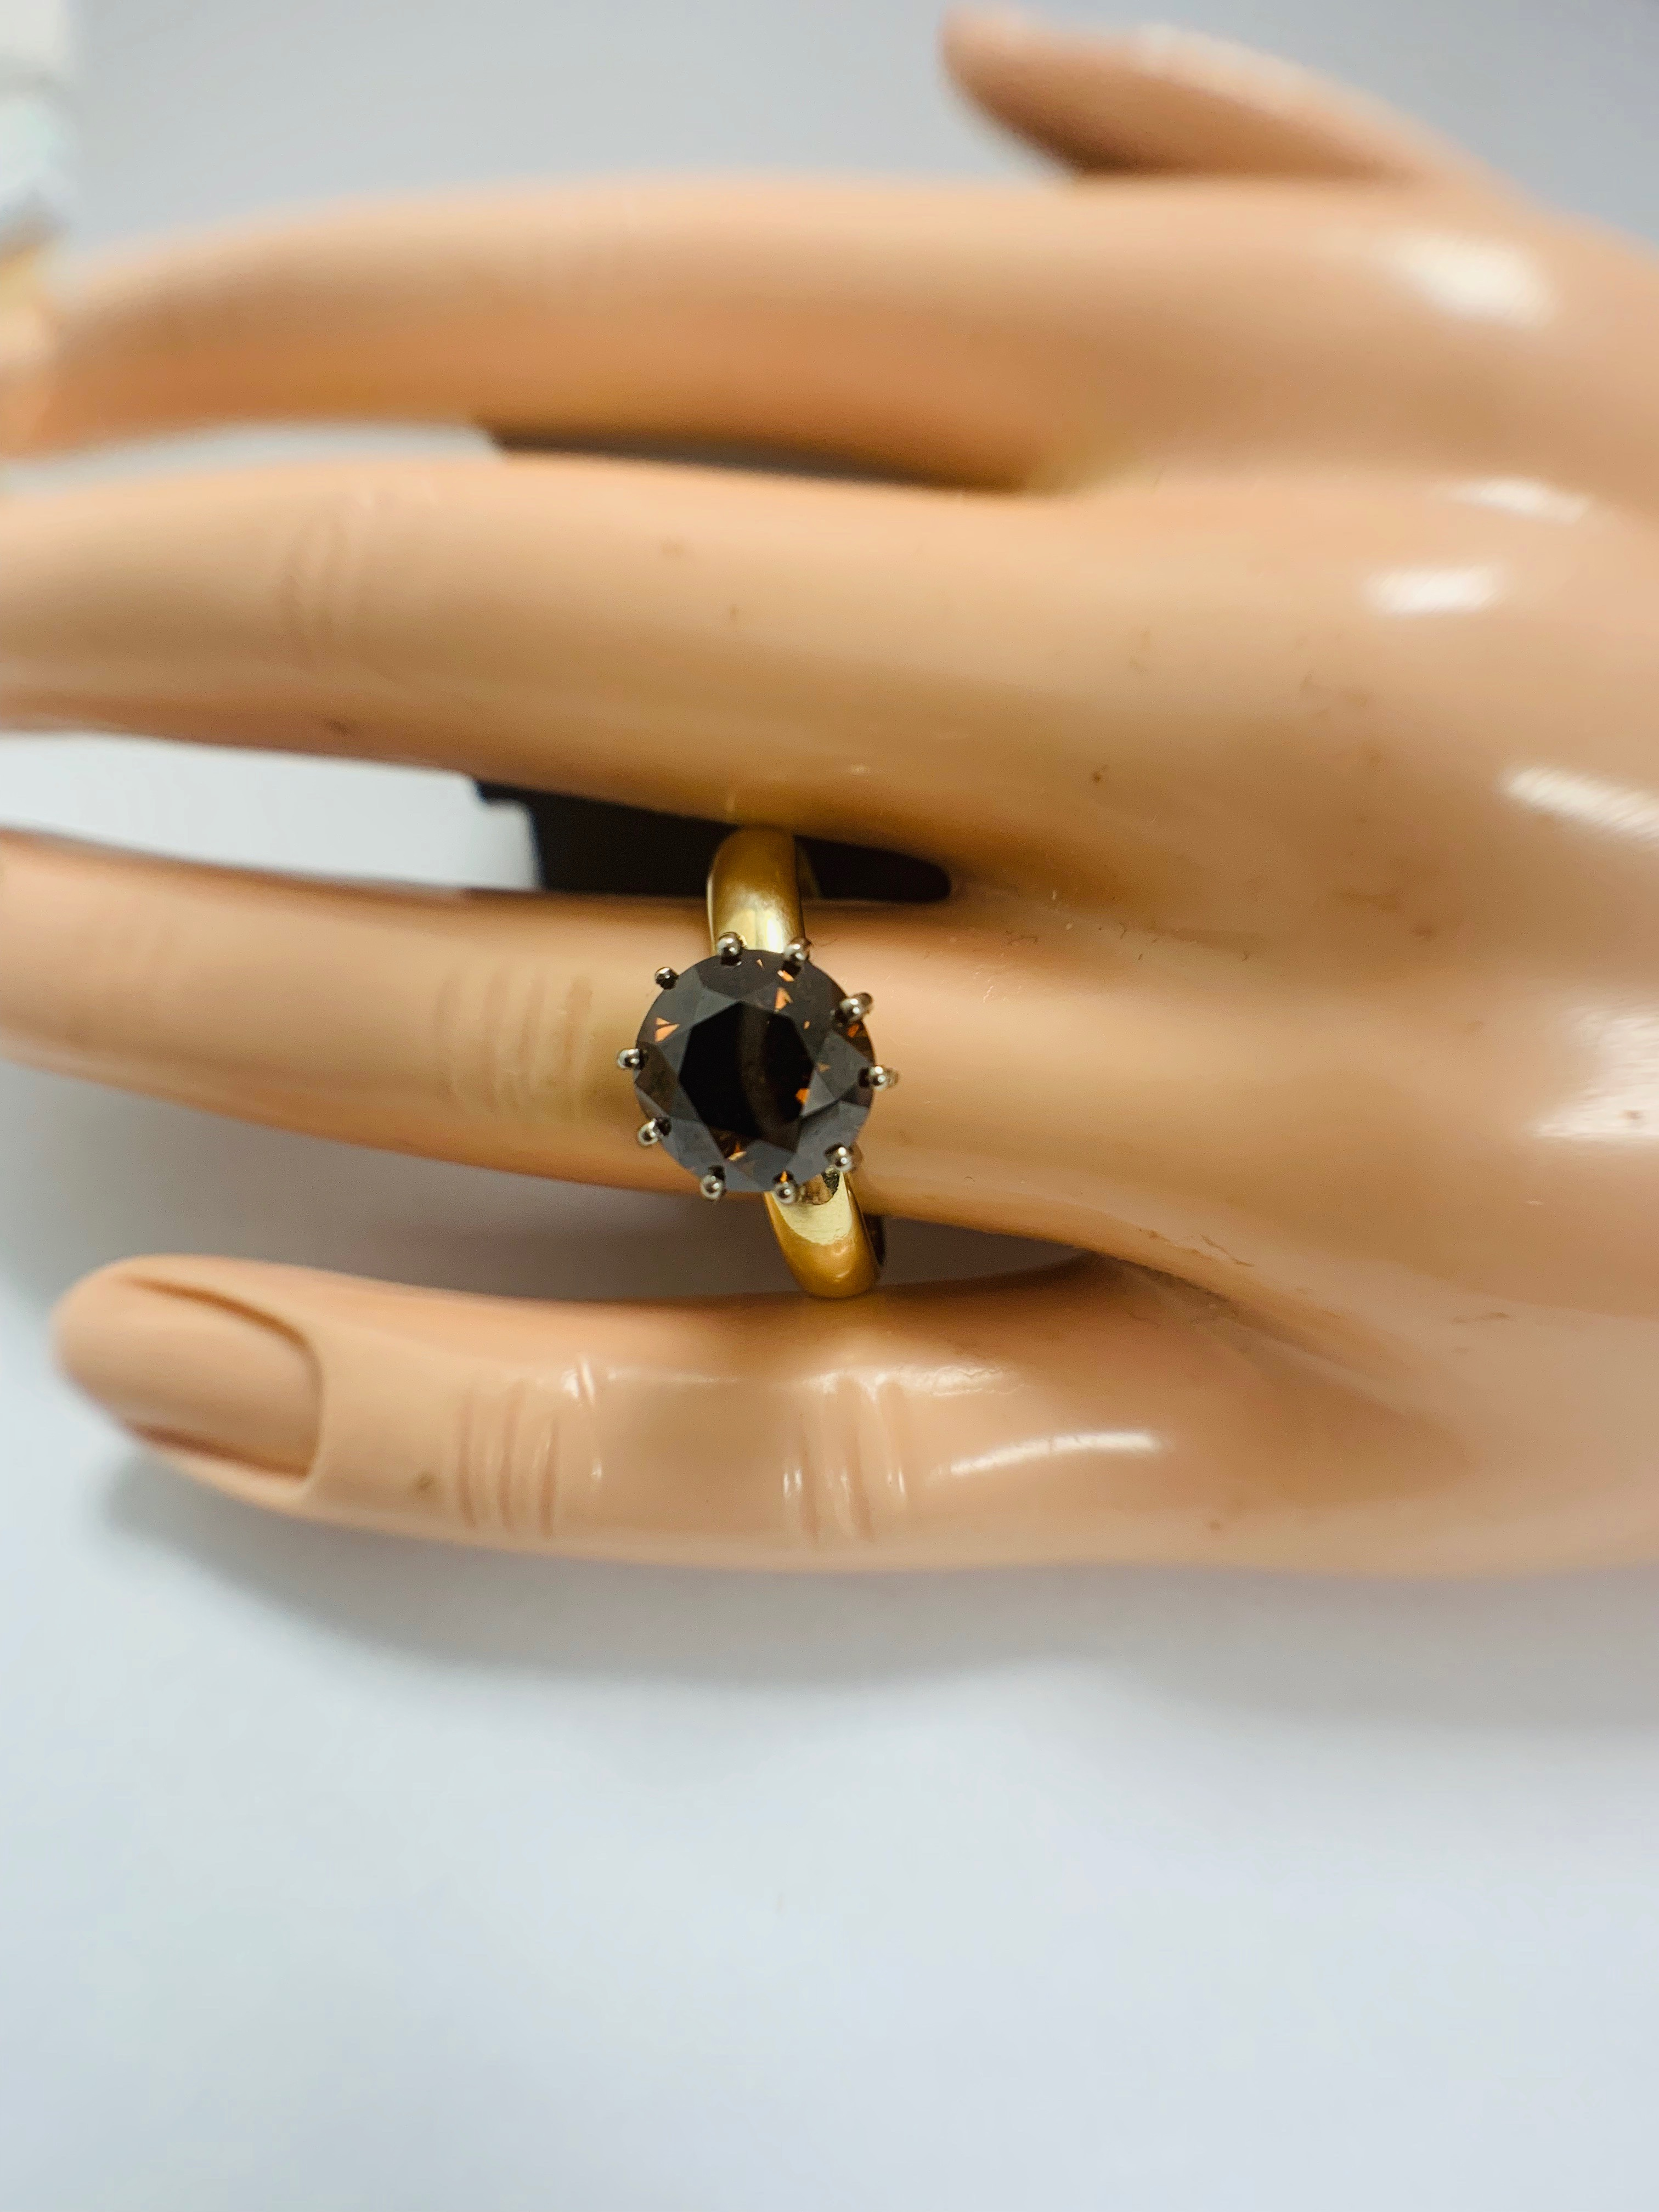 18ct Yellow Gold Diamond ring featuring centre, round brilliant cut, deep orangey brown Diamond (3.3 - Image 10 of 13